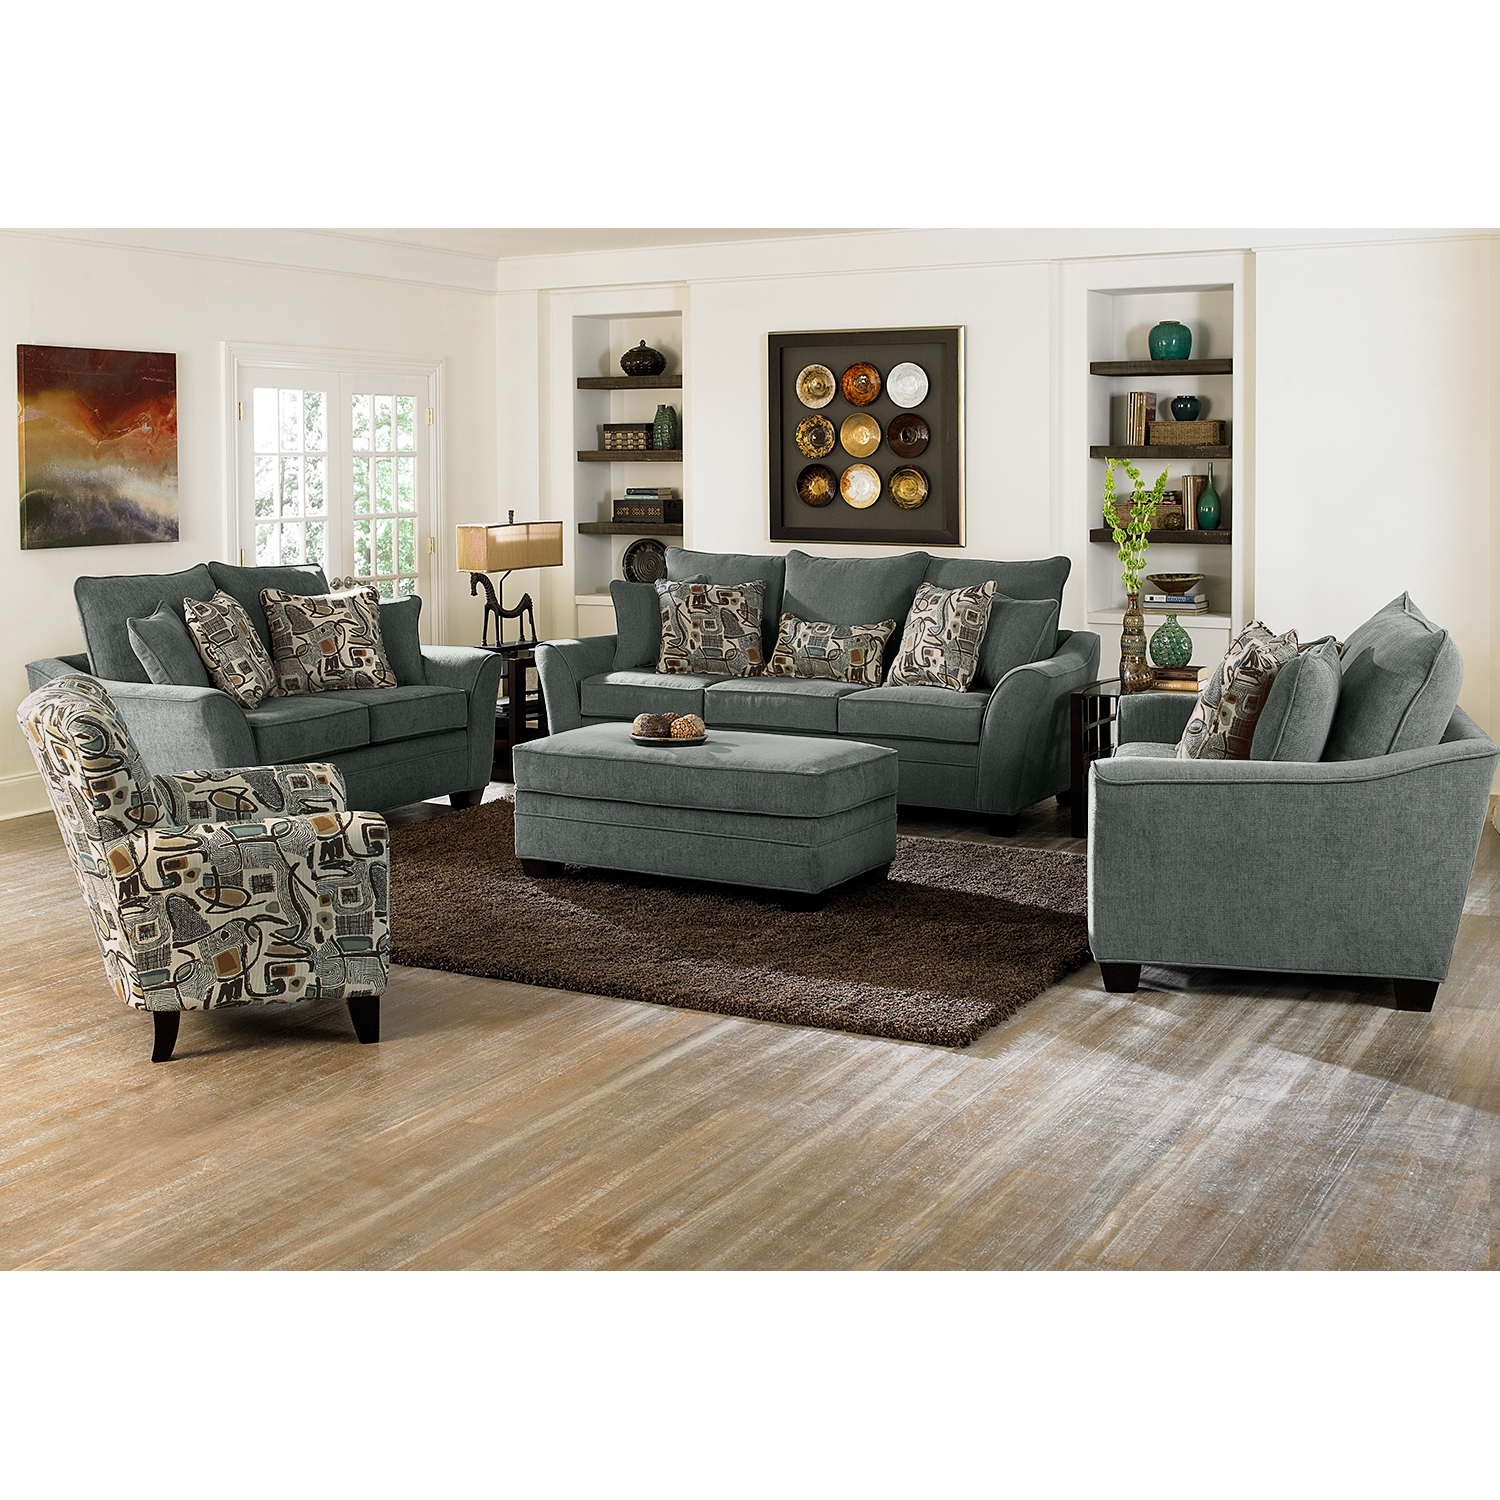 Living Room Ottoman Living Room Chair And Ottoman